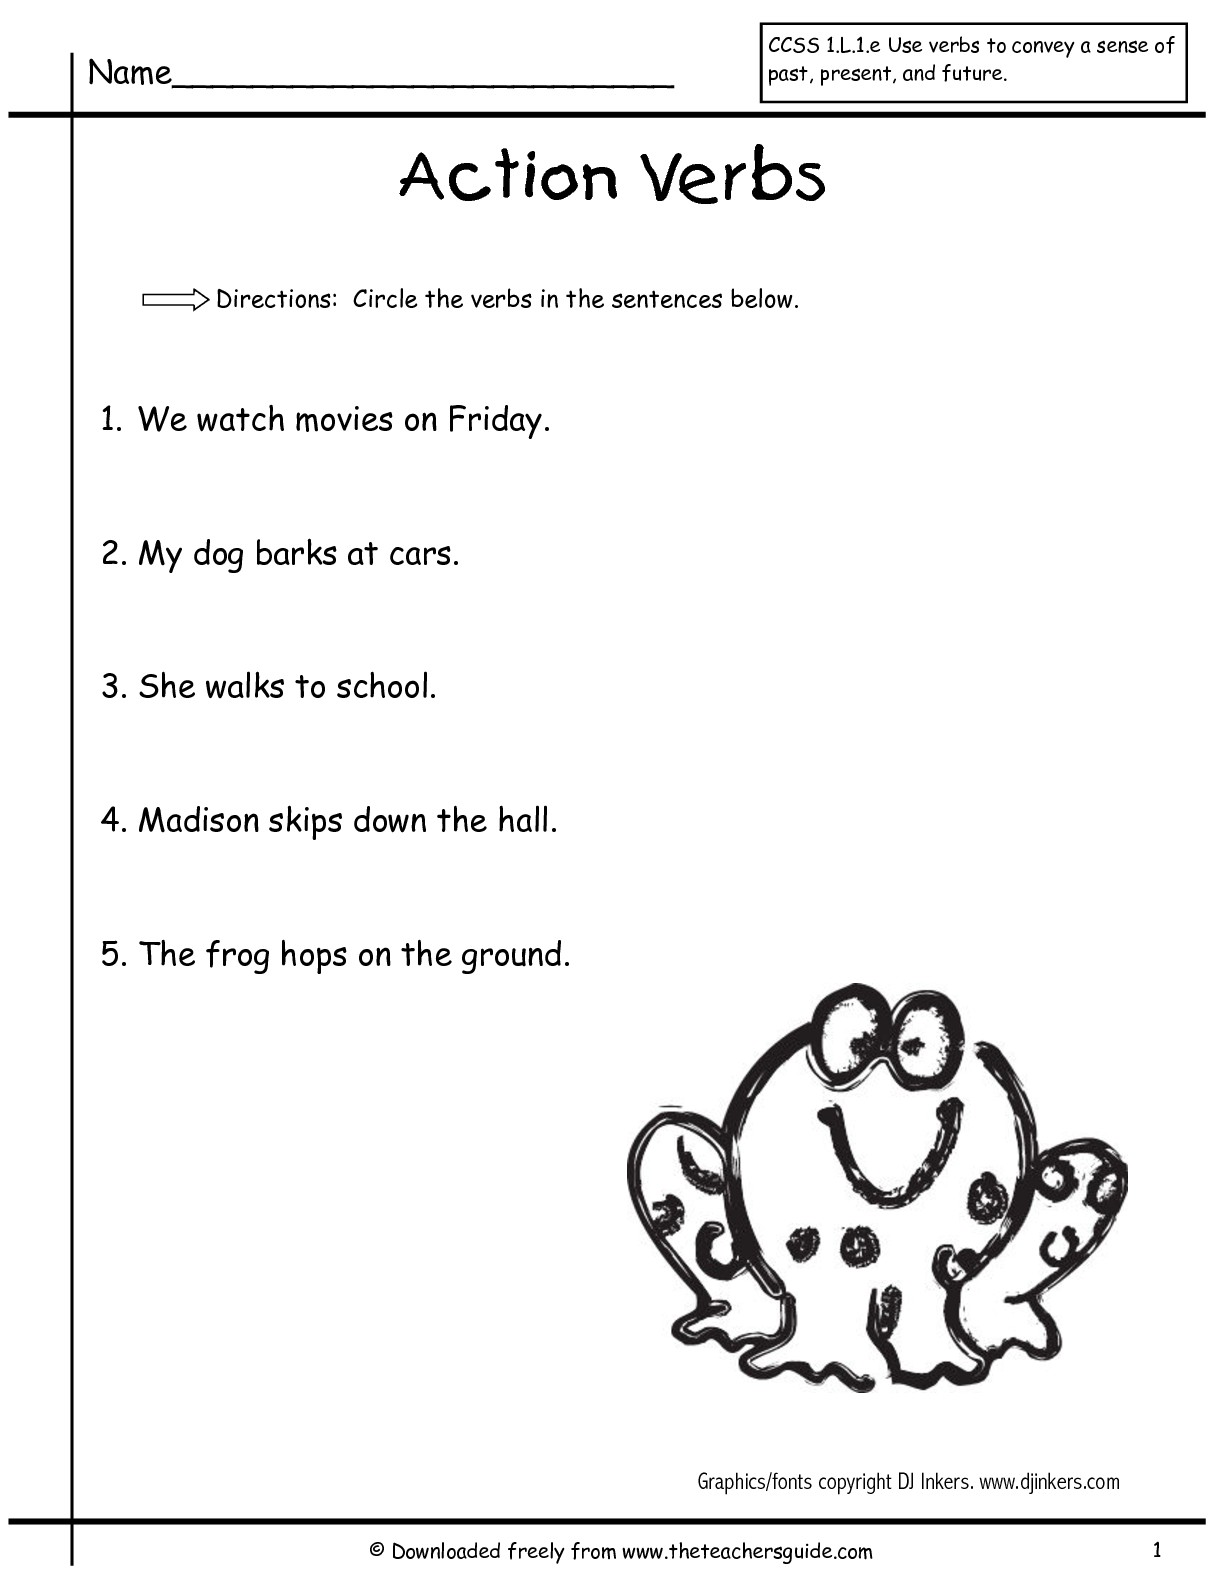 Verbs Worksheets Grade 1 The Best Worksheets Image Collection